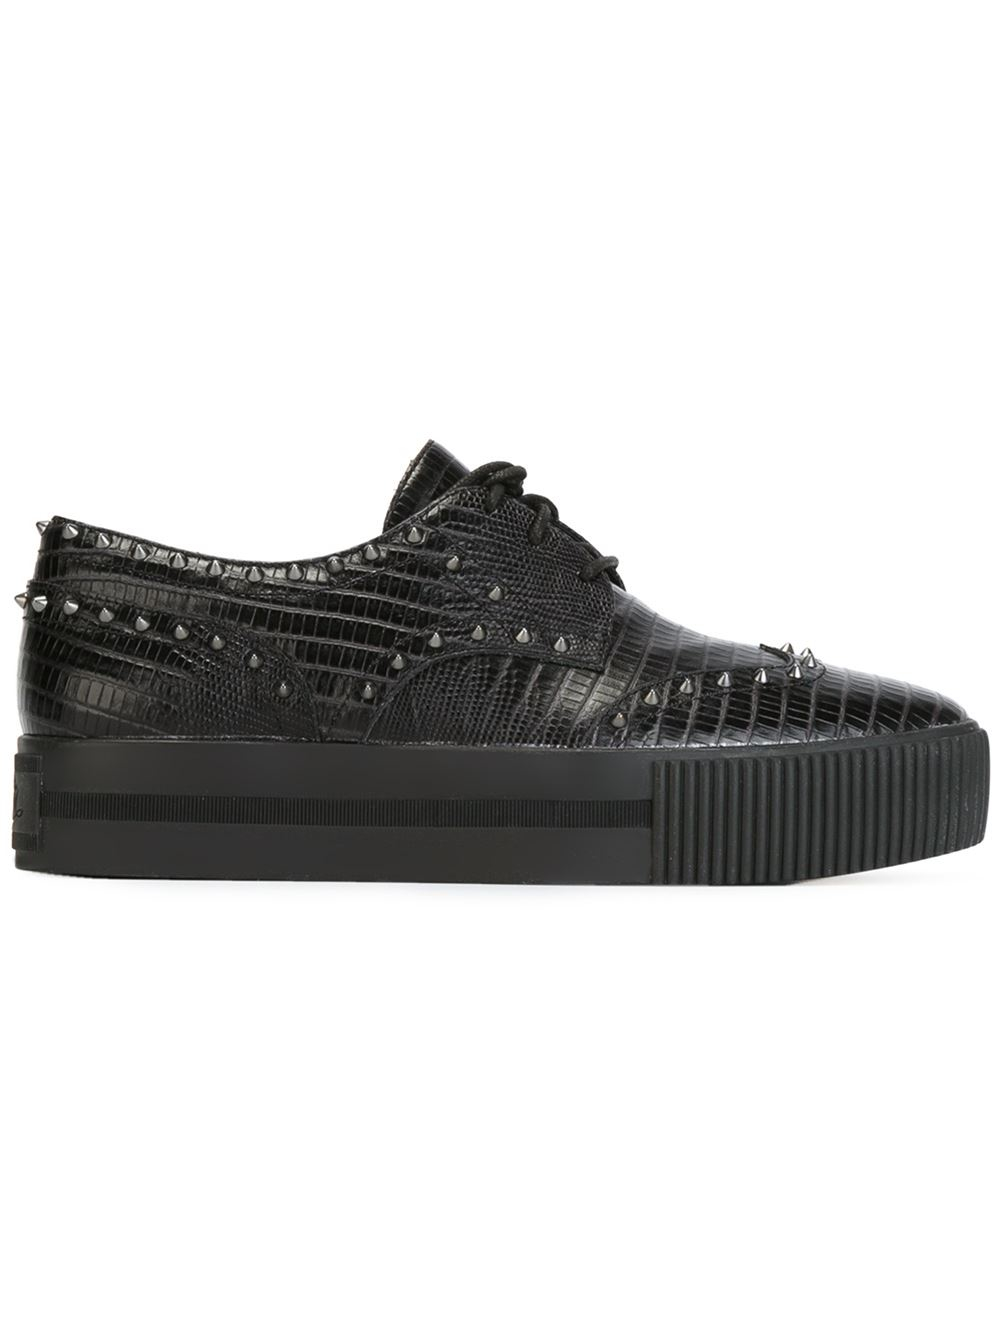 Kenzo Studded Lace Up Shoes